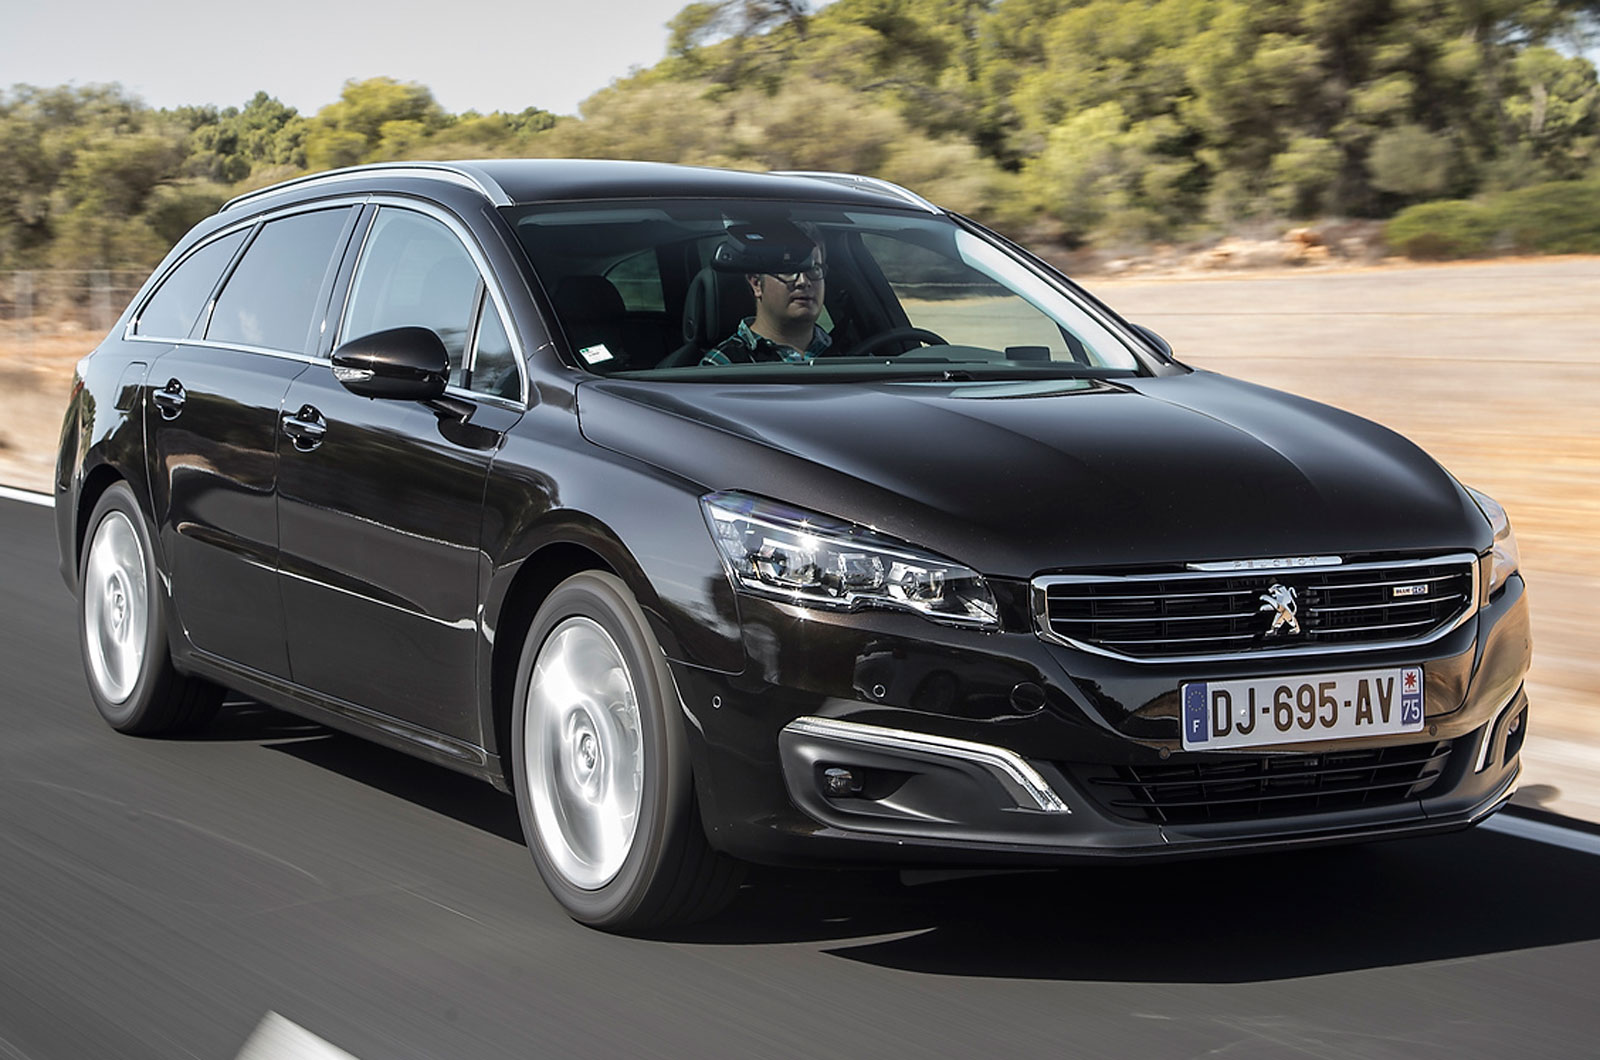 peugeot 508 sw allure 2 0 bluehdi 150 first drive review autocar. Black Bedroom Furniture Sets. Home Design Ideas